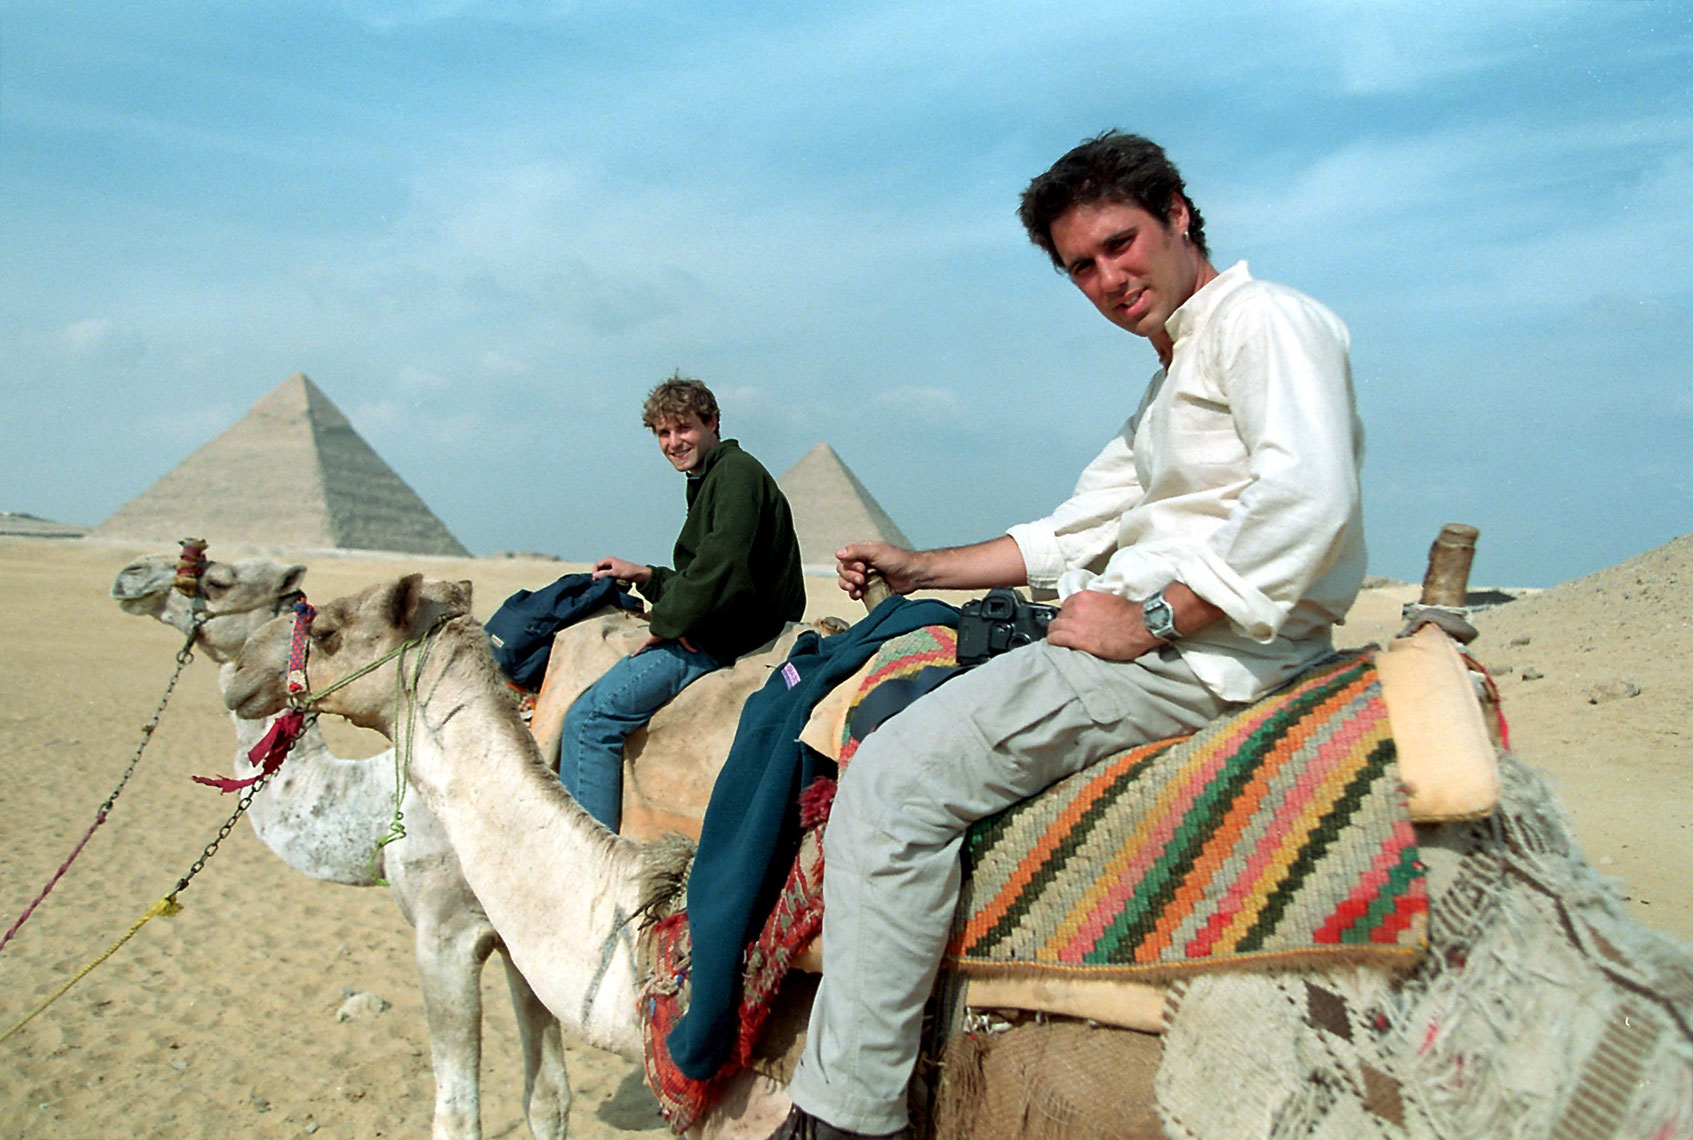 me-and-chad-on-camels